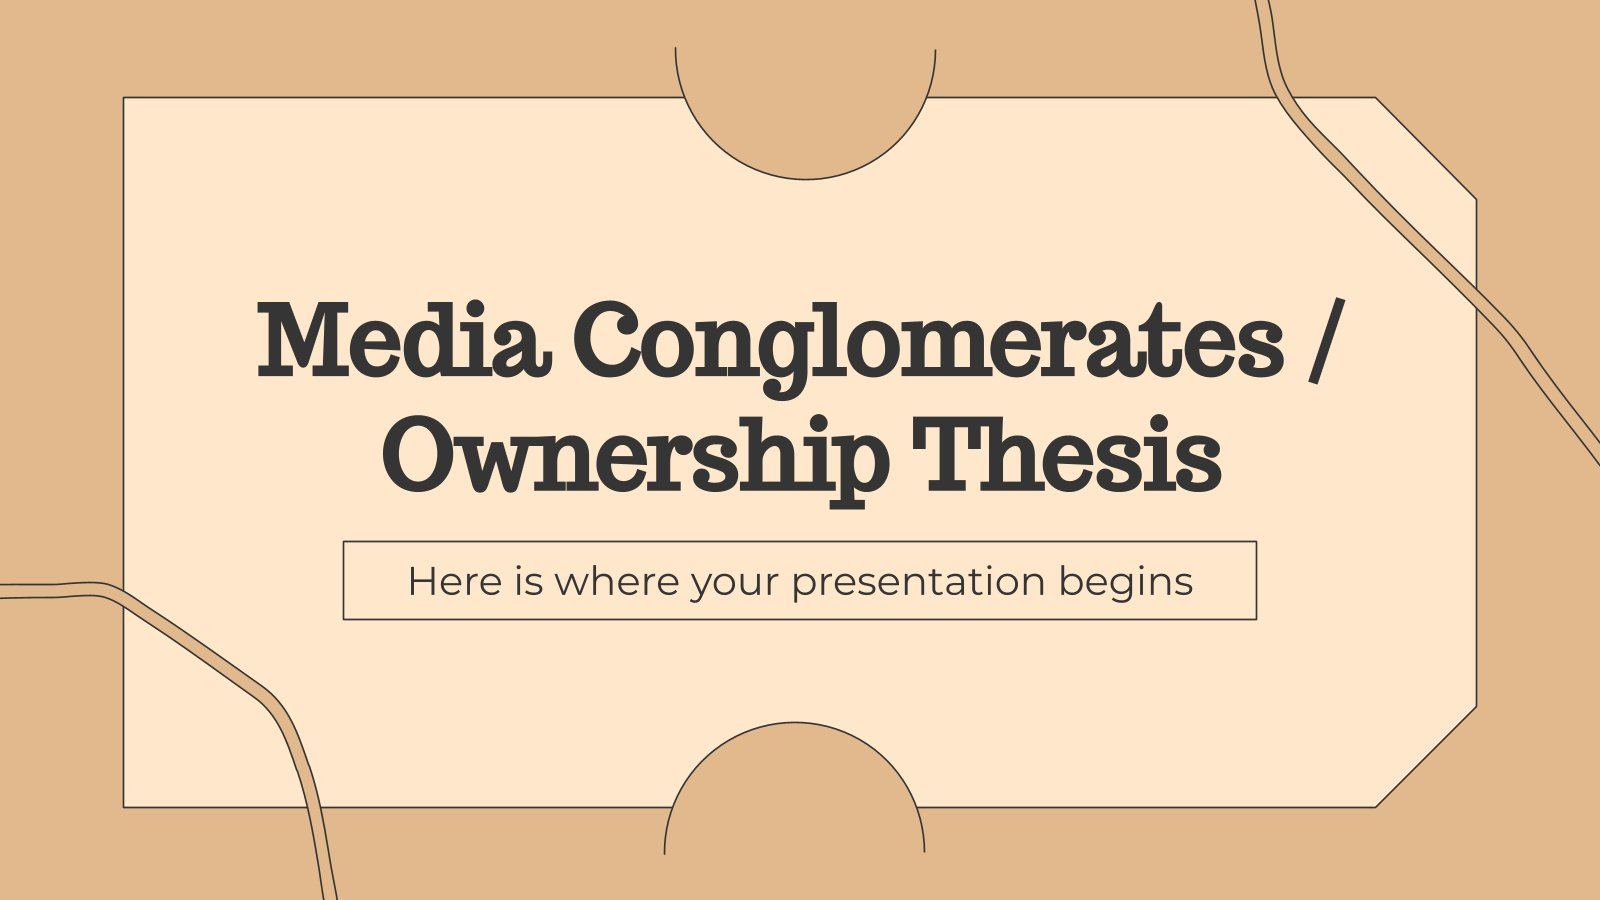 Media Conglomerates / Ownership Thesis presentation template